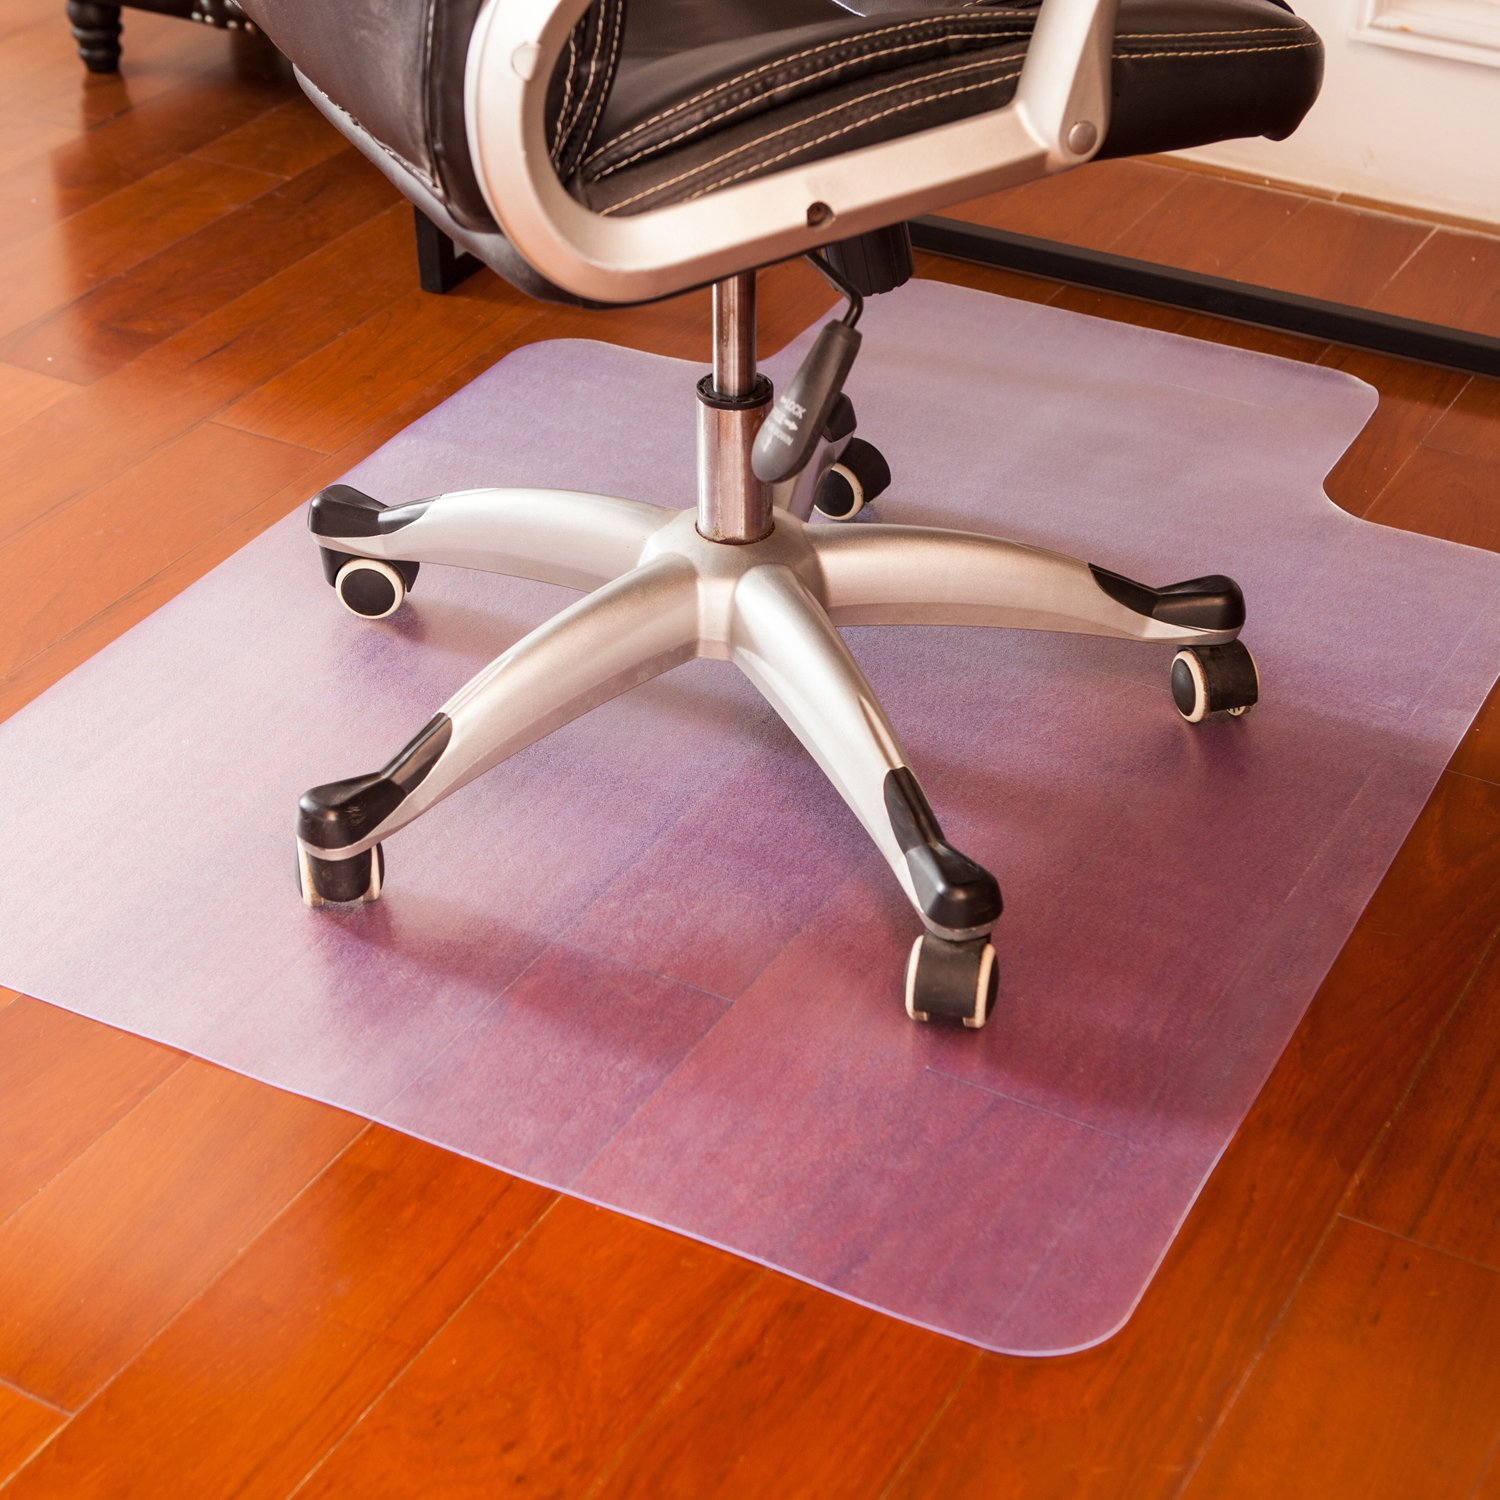 hardwood floor chair mats. Mysuntown Office Chair Mat For Hardwood Floor, Anti-Slip Thin Desk Floor Protective Mats A